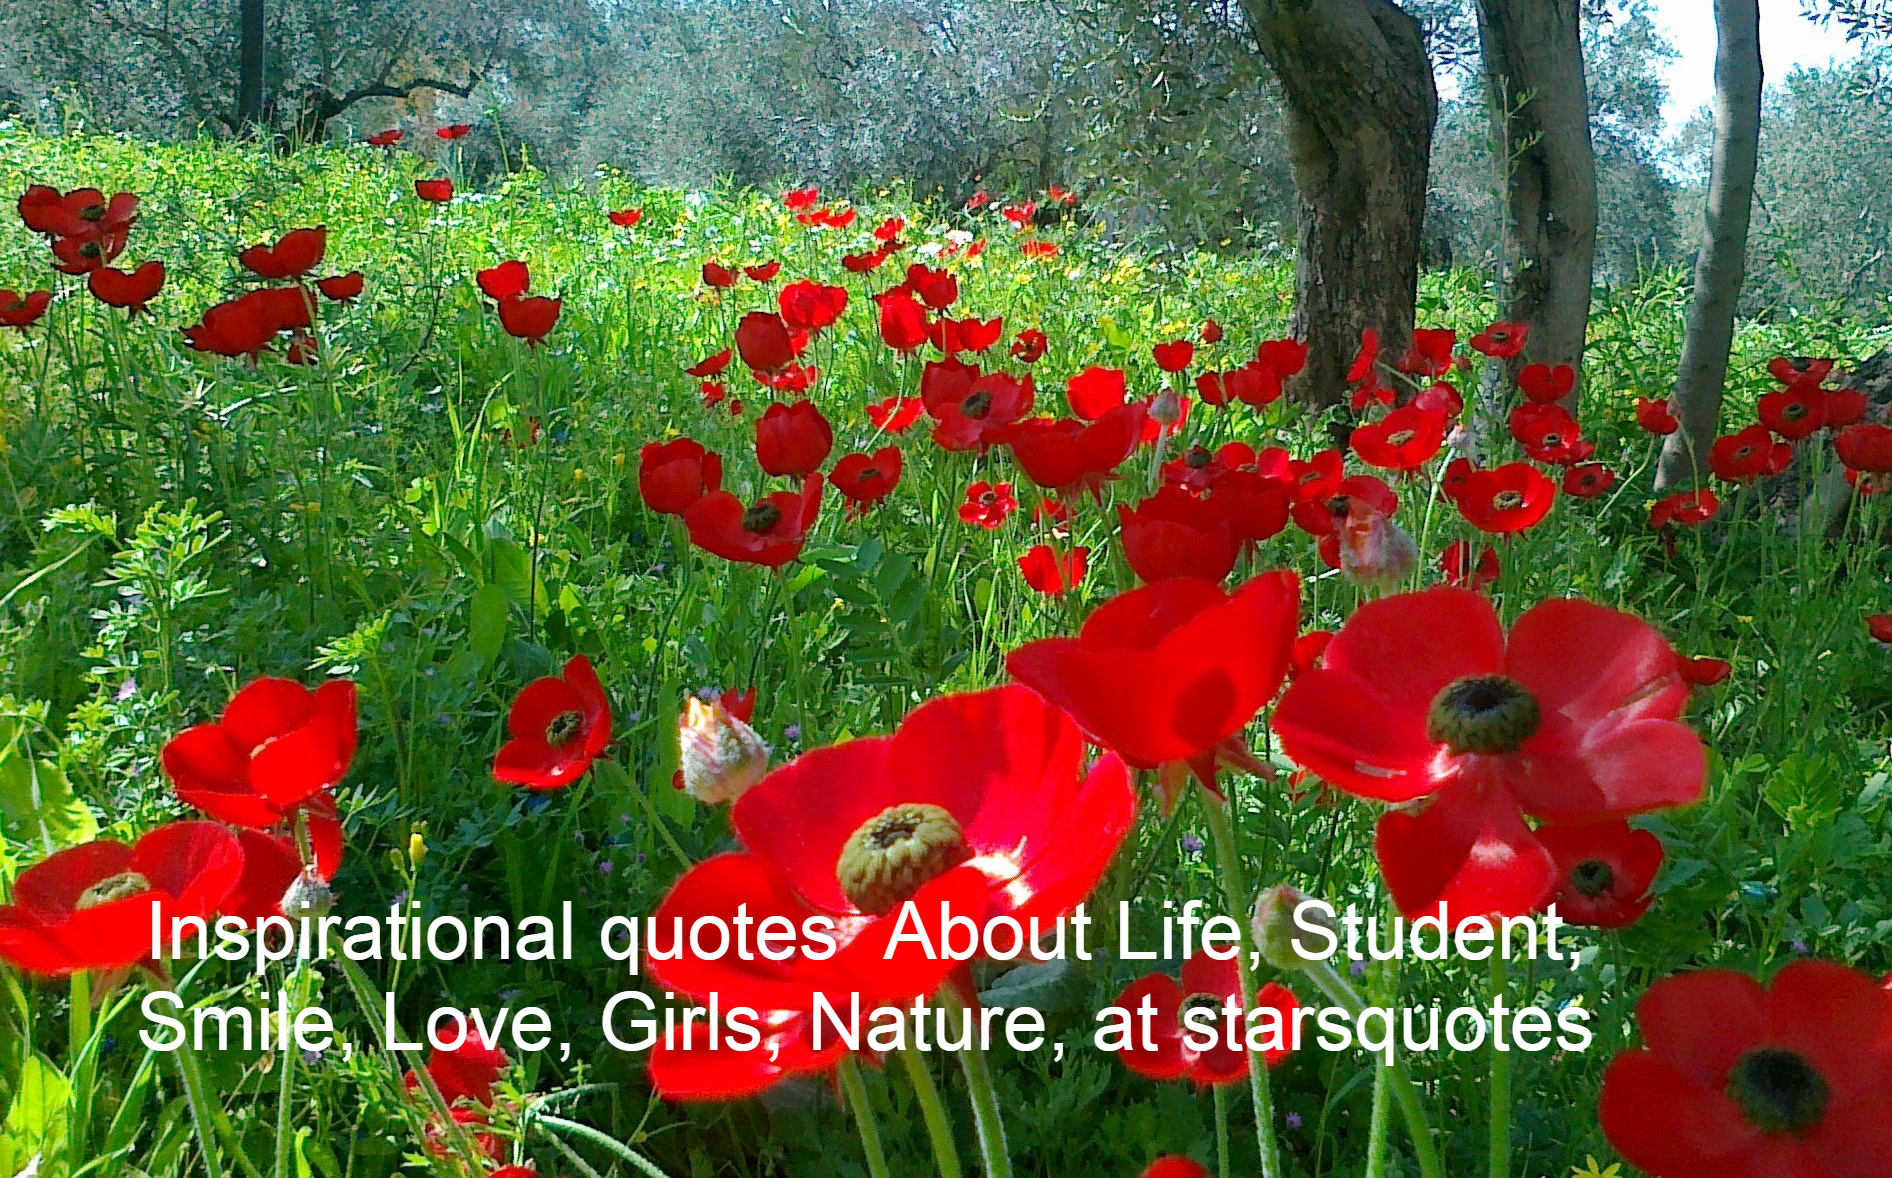 Inspirational quotes About Life, Student, Smile, Love, Girls, Nature, at starsquotes